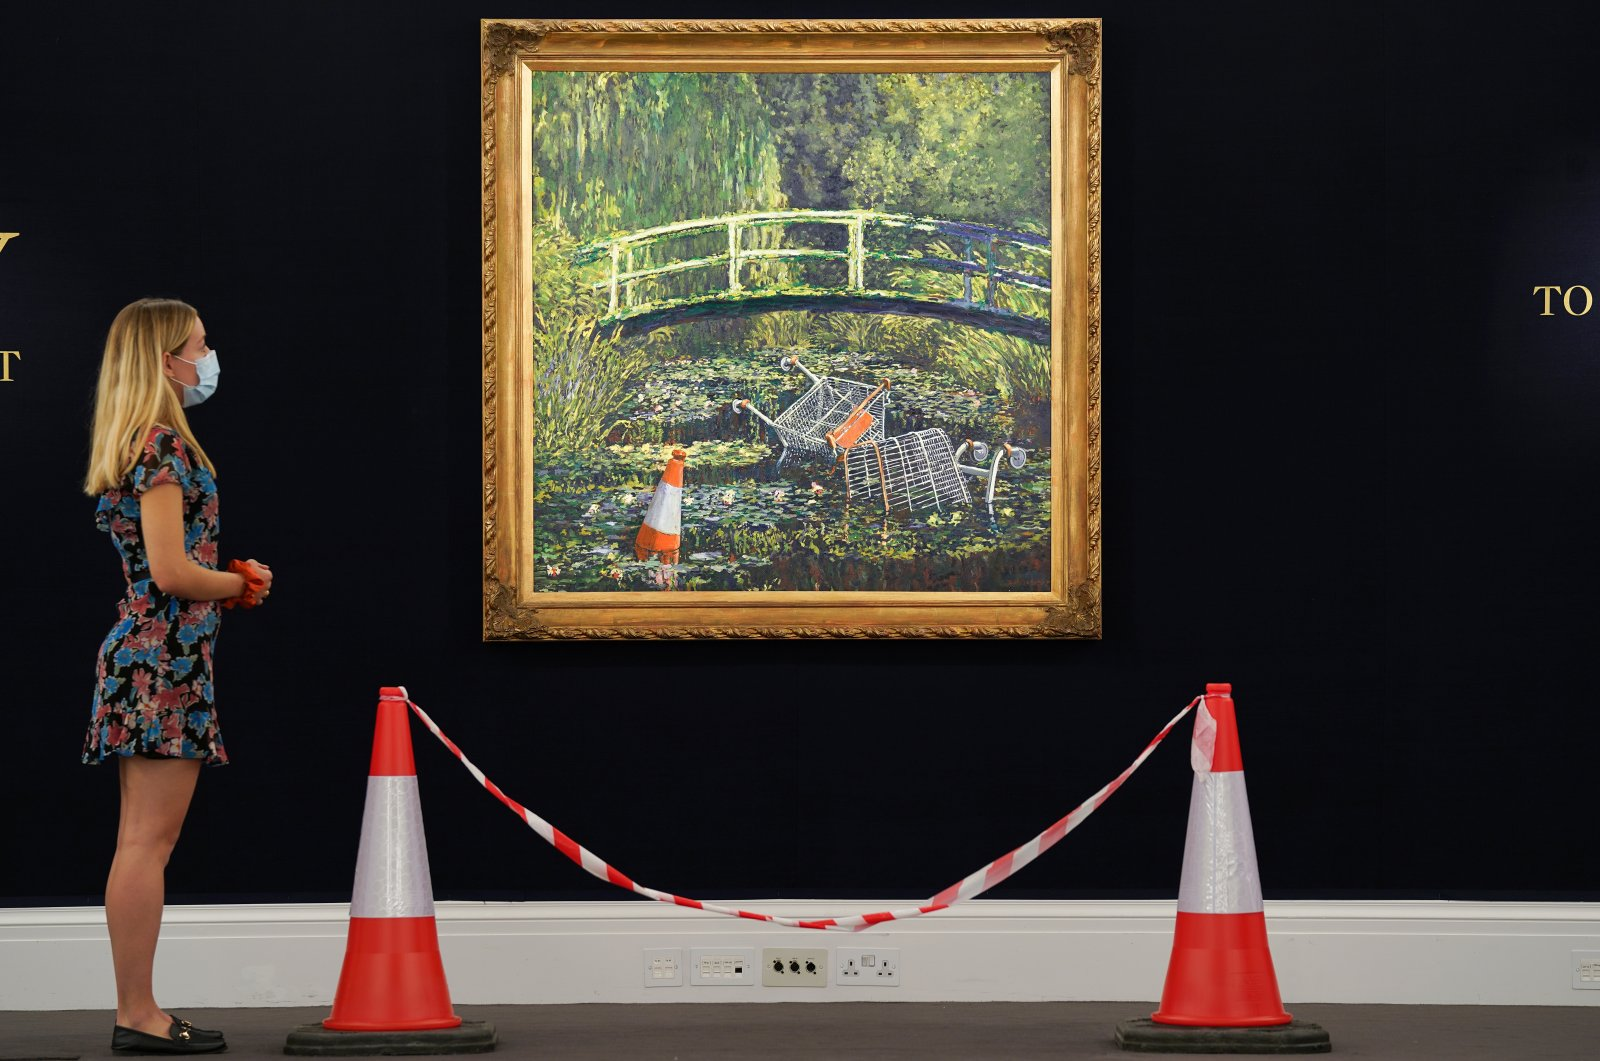 """A visitor stands in front of a painting by the artist Banksy, titled """"Show me the Monet,"""" at Sotheby's in London, Britain, Sept. 18, 2020. (Sotheby's handout via Reuters)"""